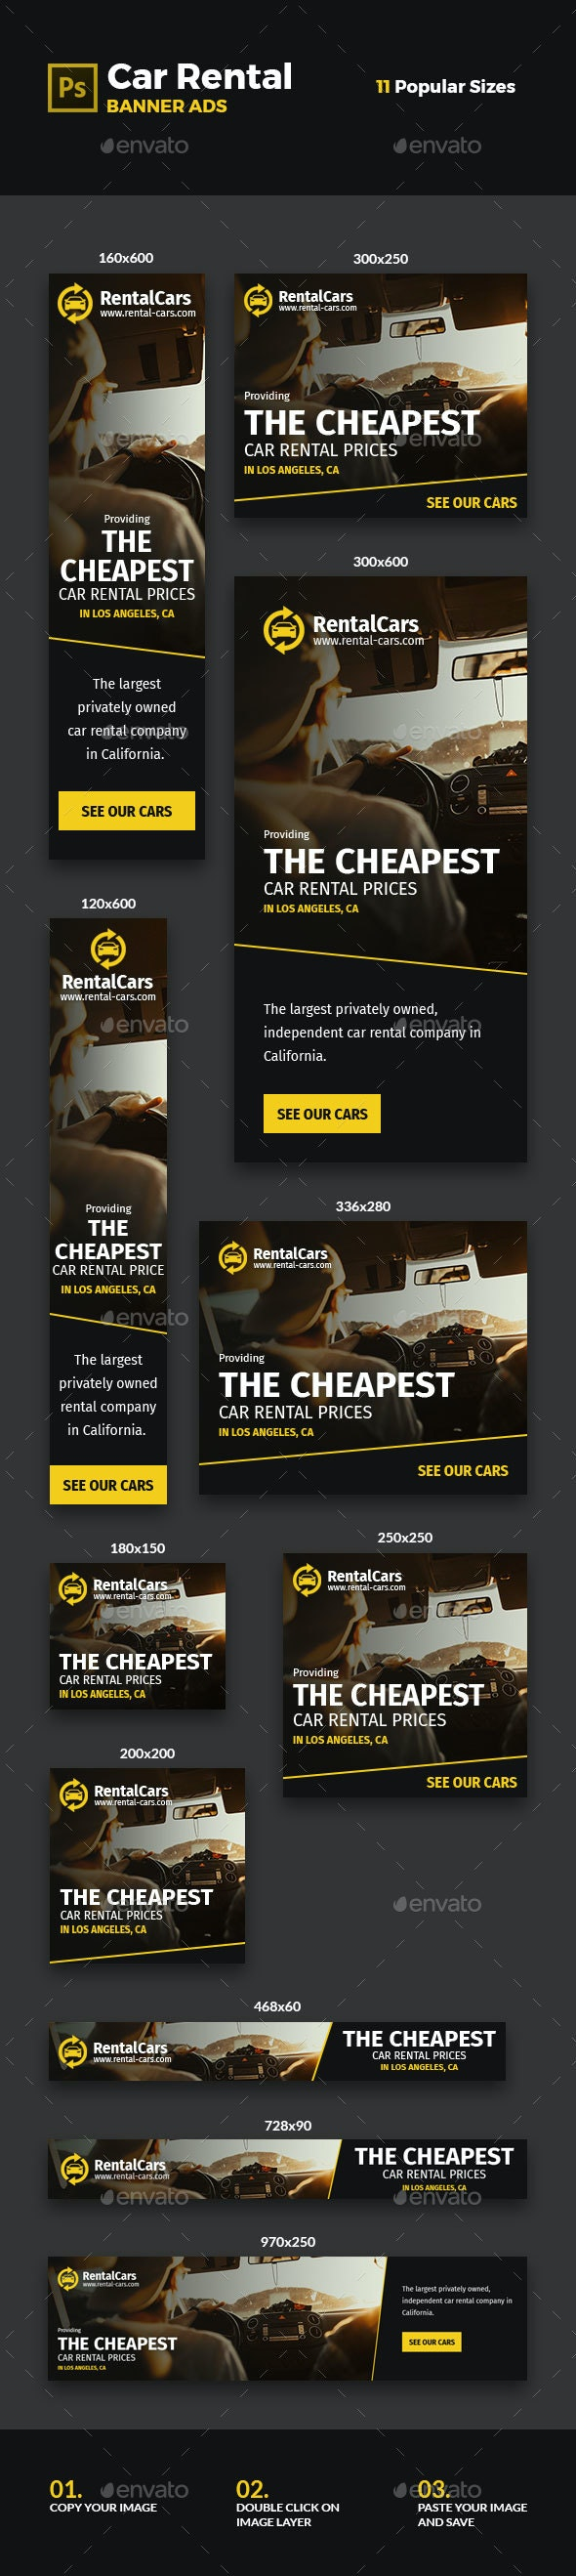 Car Rental Banners #2 - Banners & Ads Web Elements